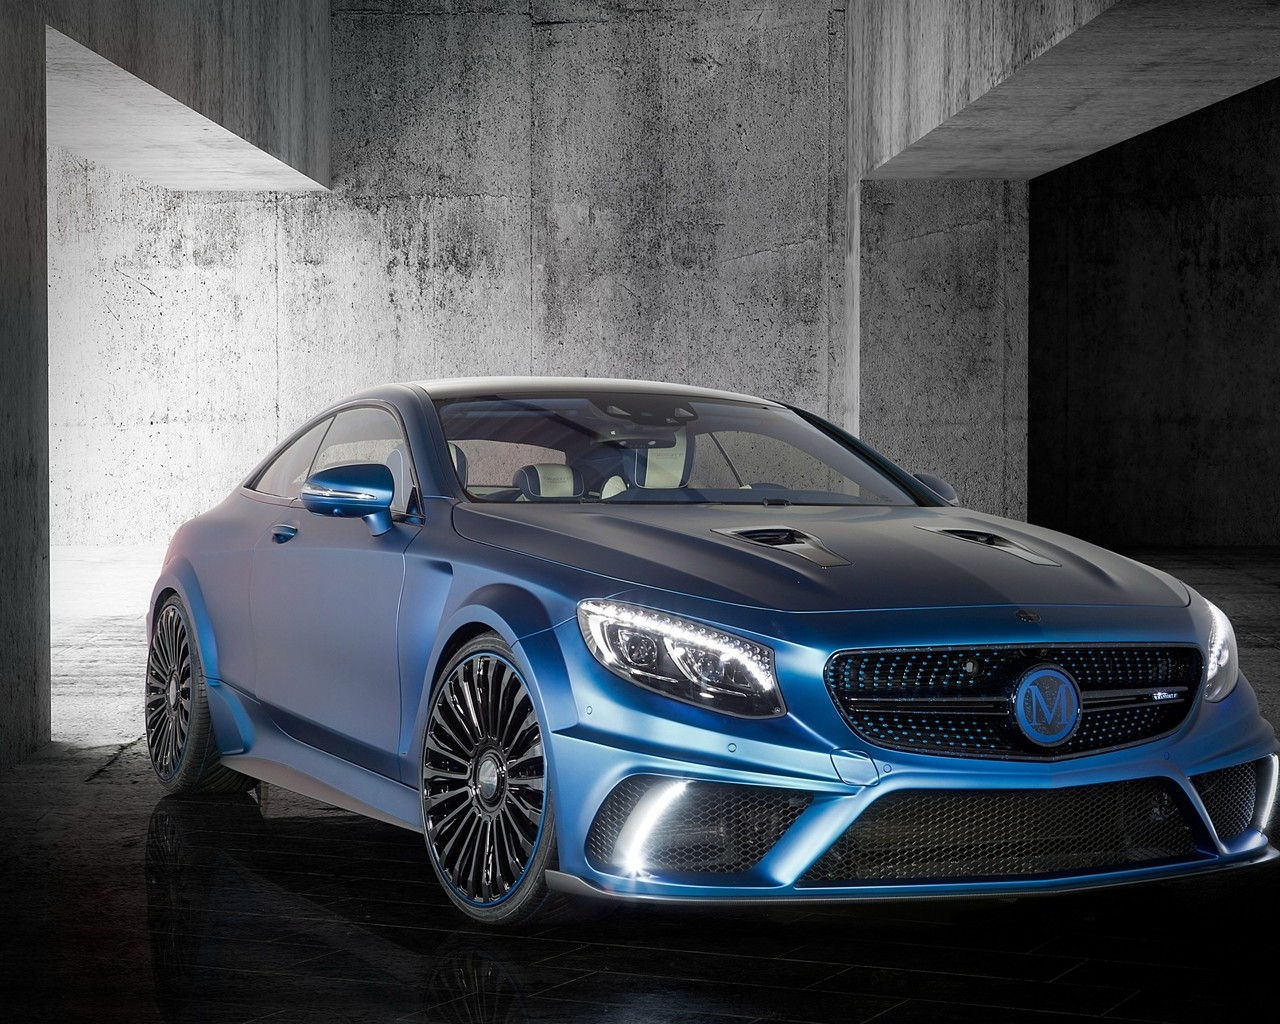 Mercedes Benz S63 AMG Brabus Diamond Edition for 1280 x 1024 resolution